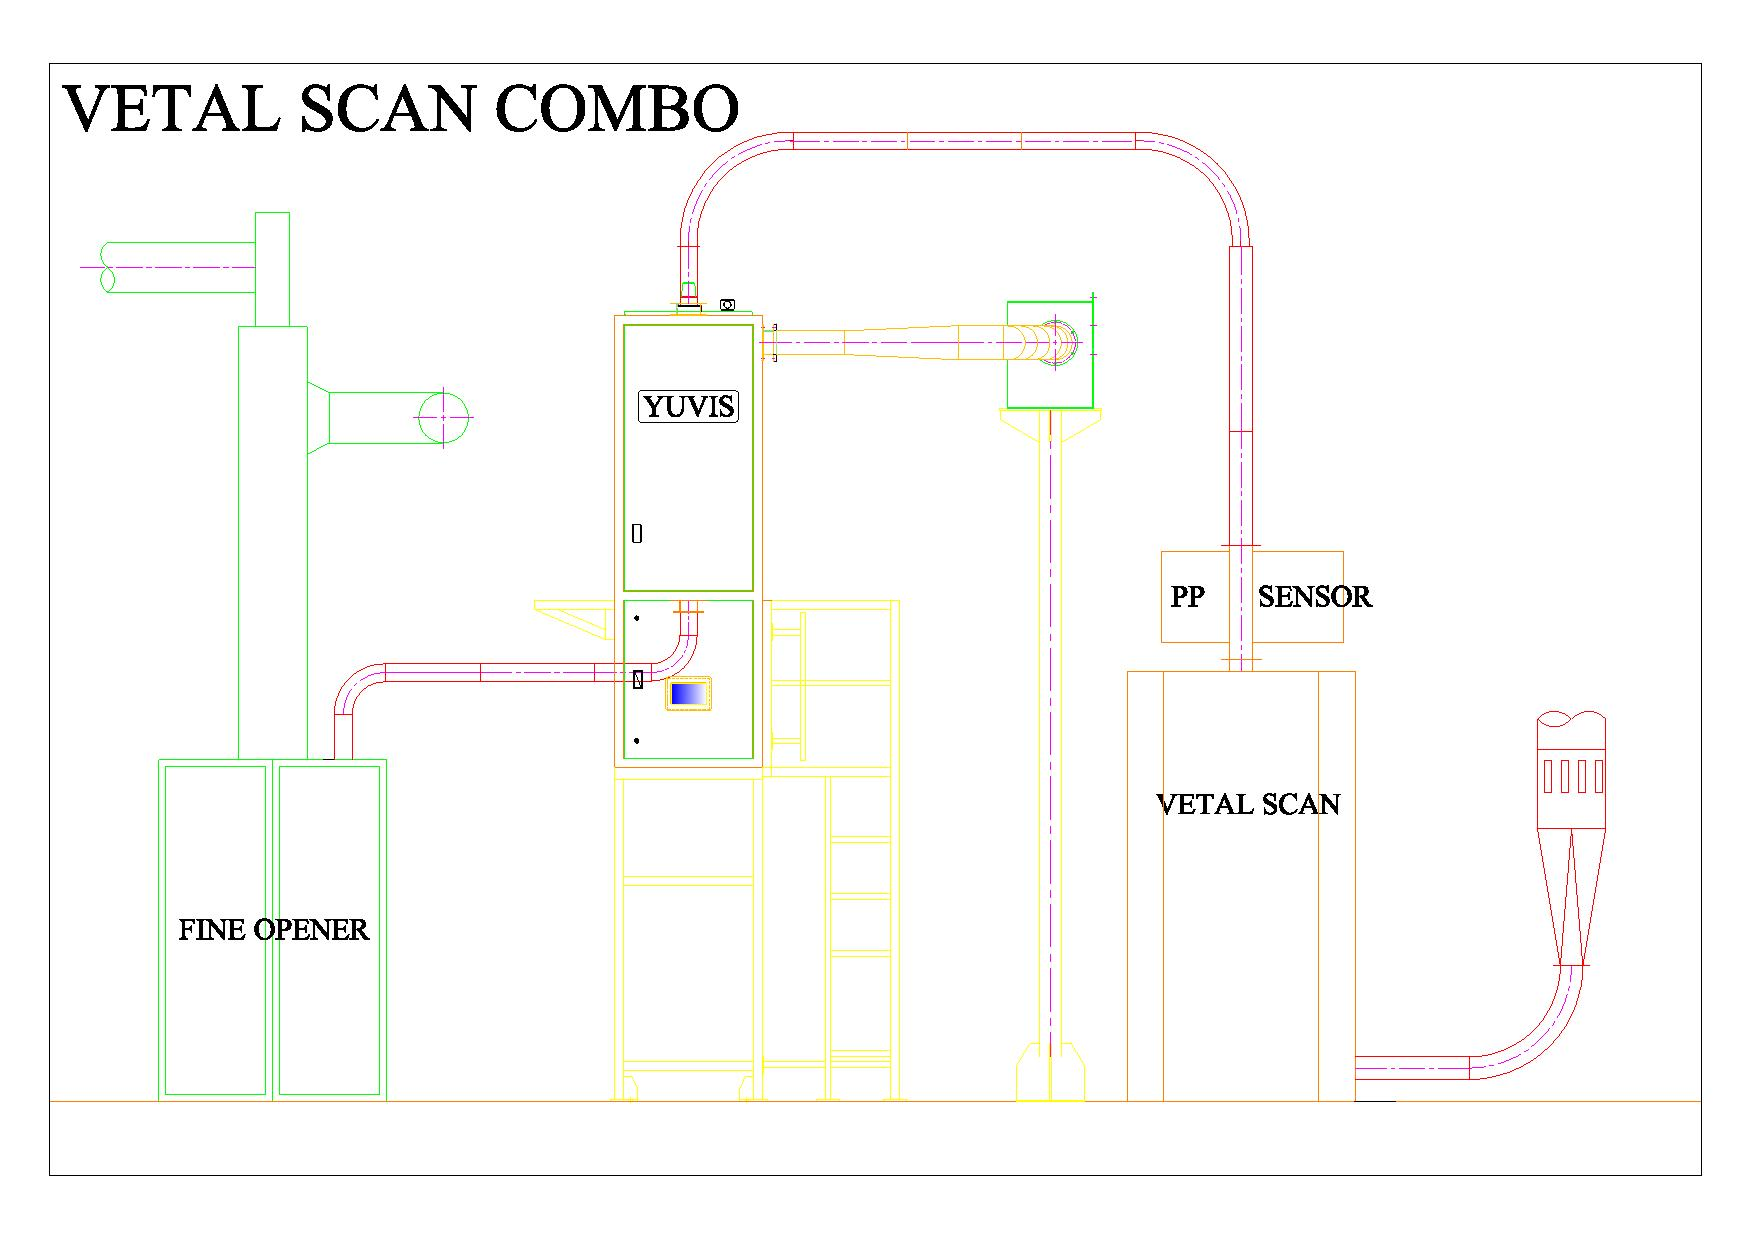 Drawing for VETAL SCAN COMBO-Model-page-001